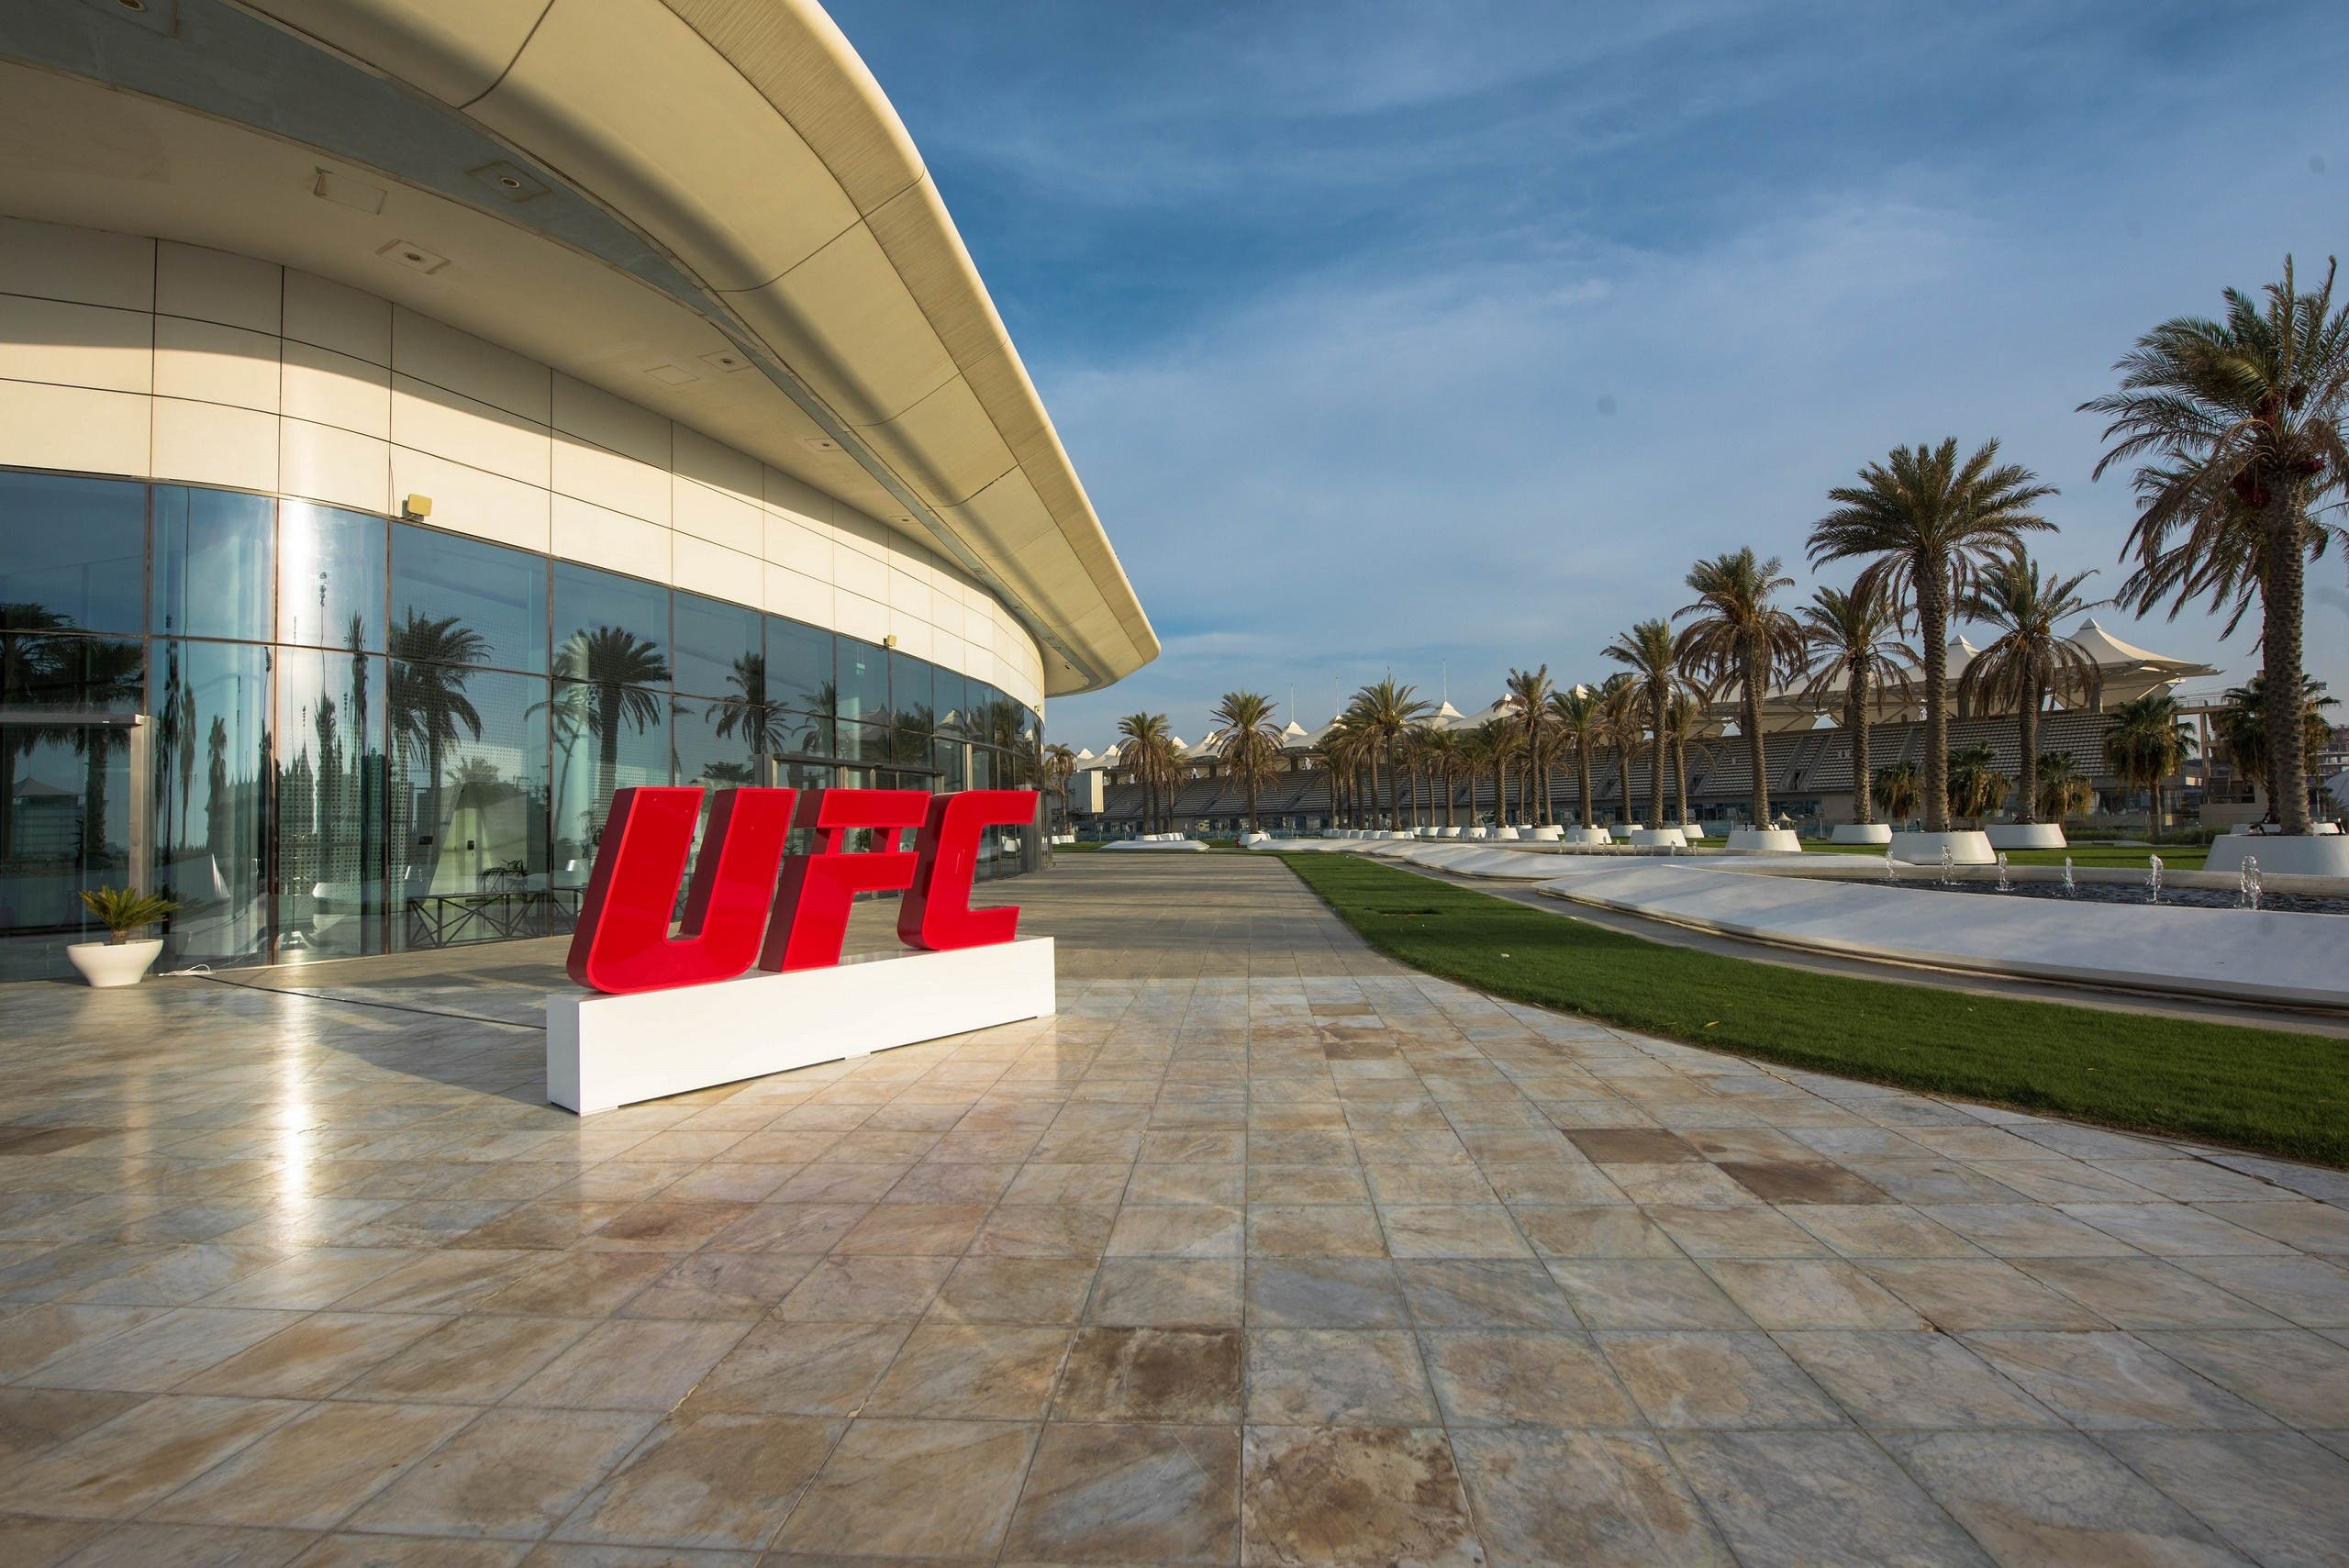 The UFC logo in Abu Dhabi ahead of Fight Island. (Supplied)